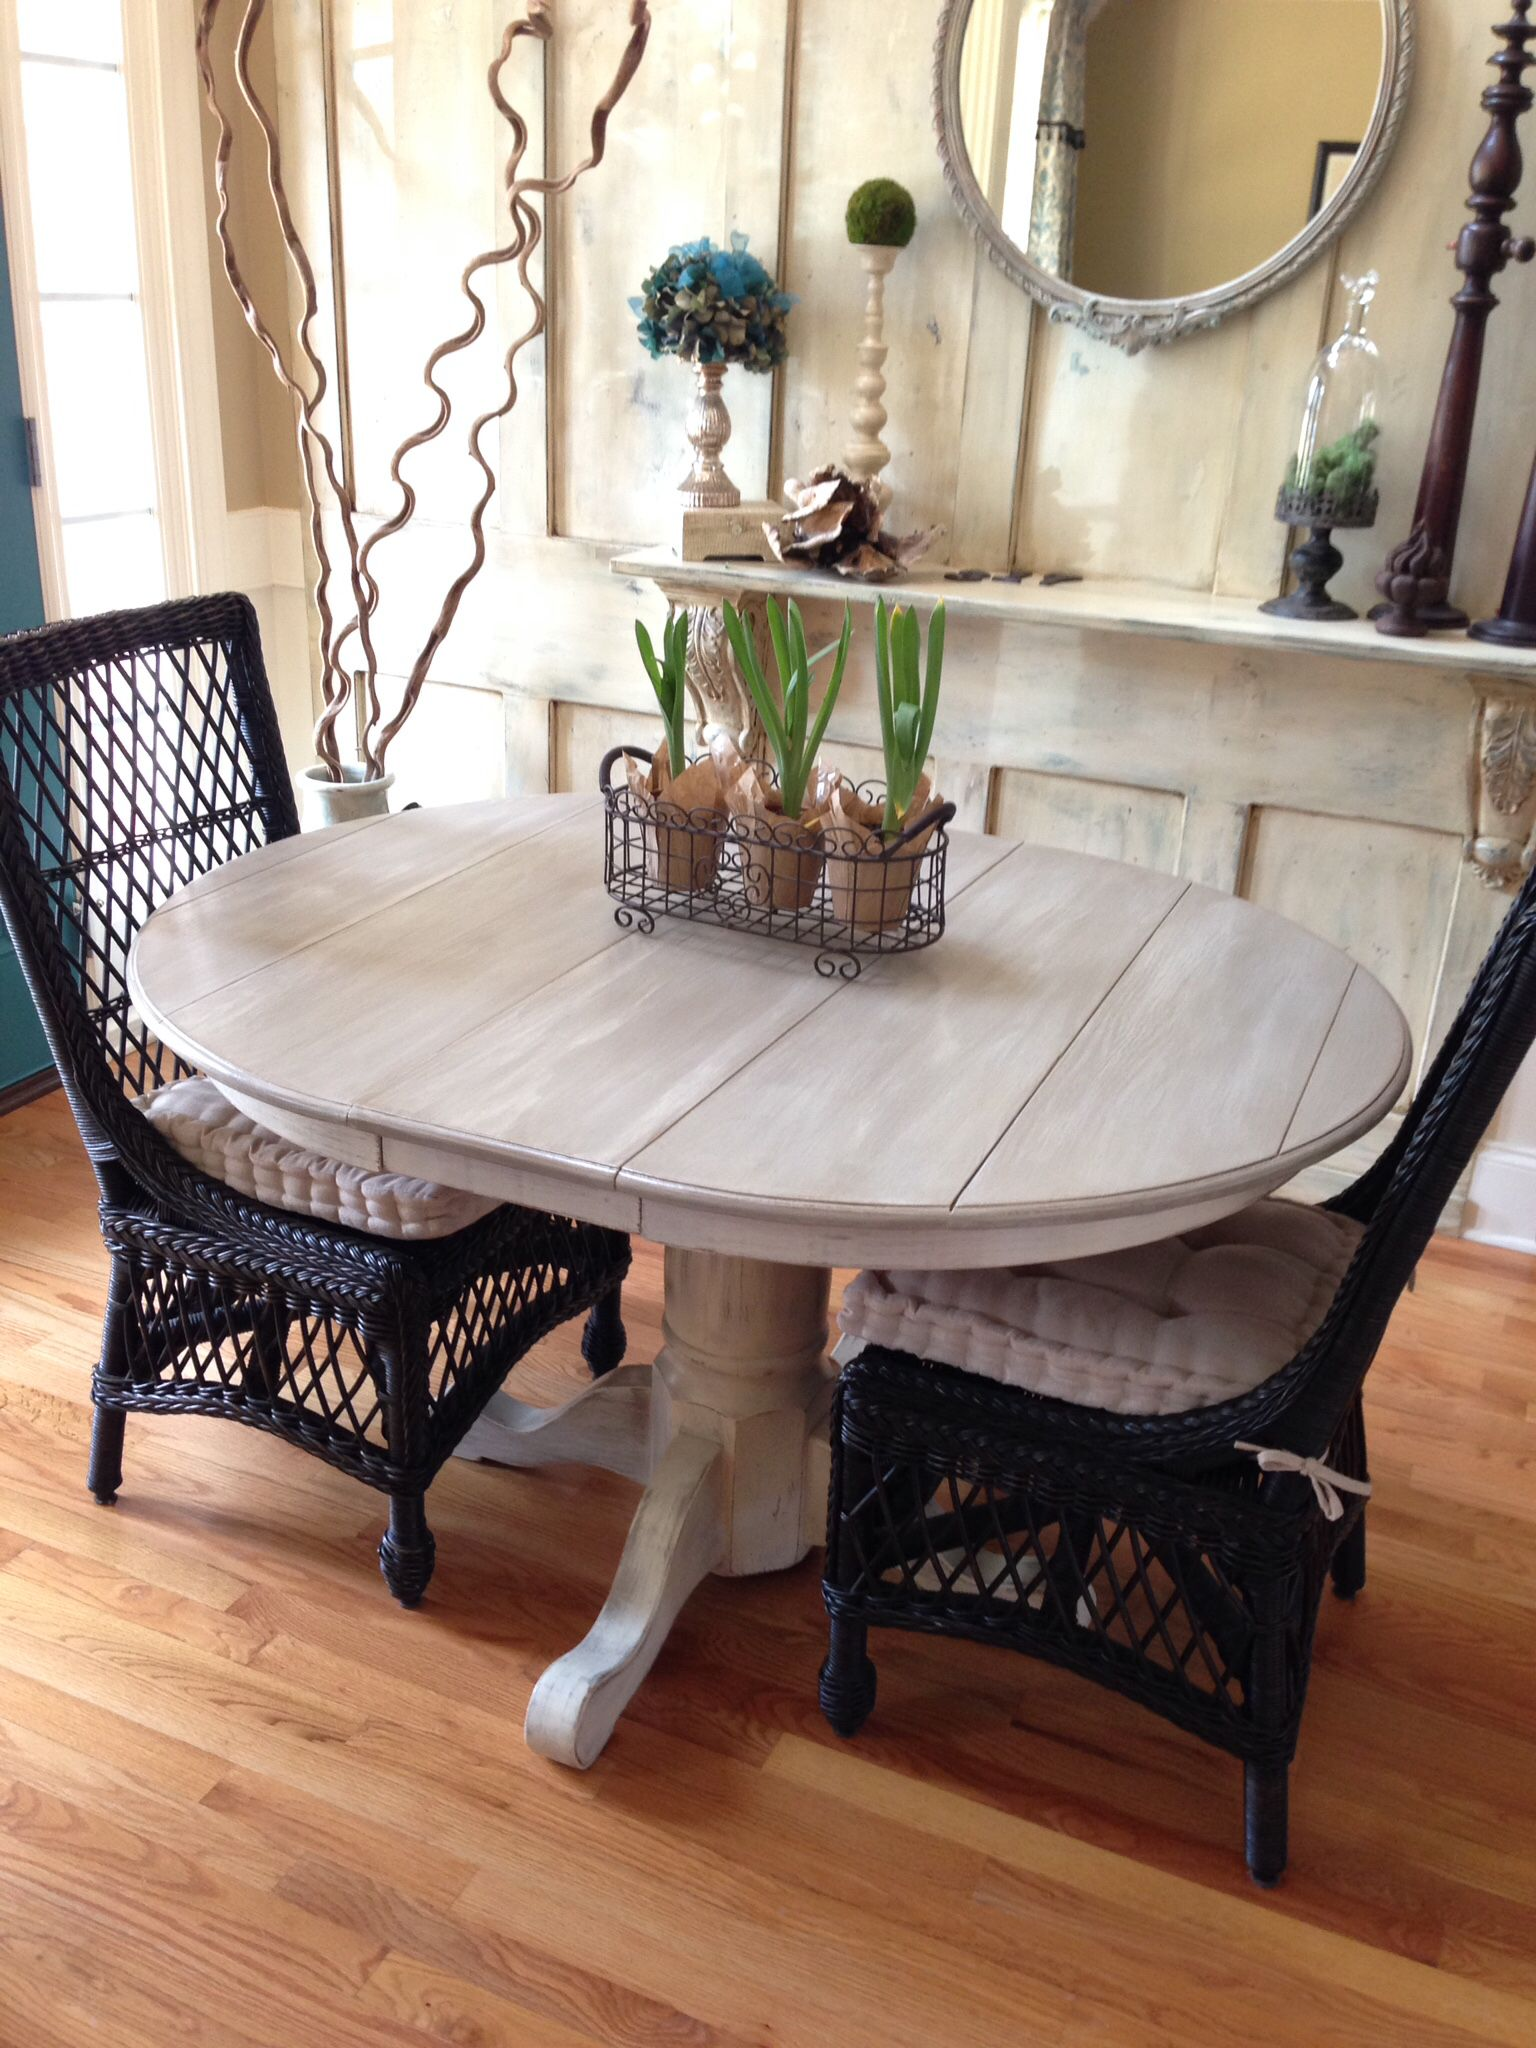 Kitchen or dining table Annie Sloan Chalk pint coco and